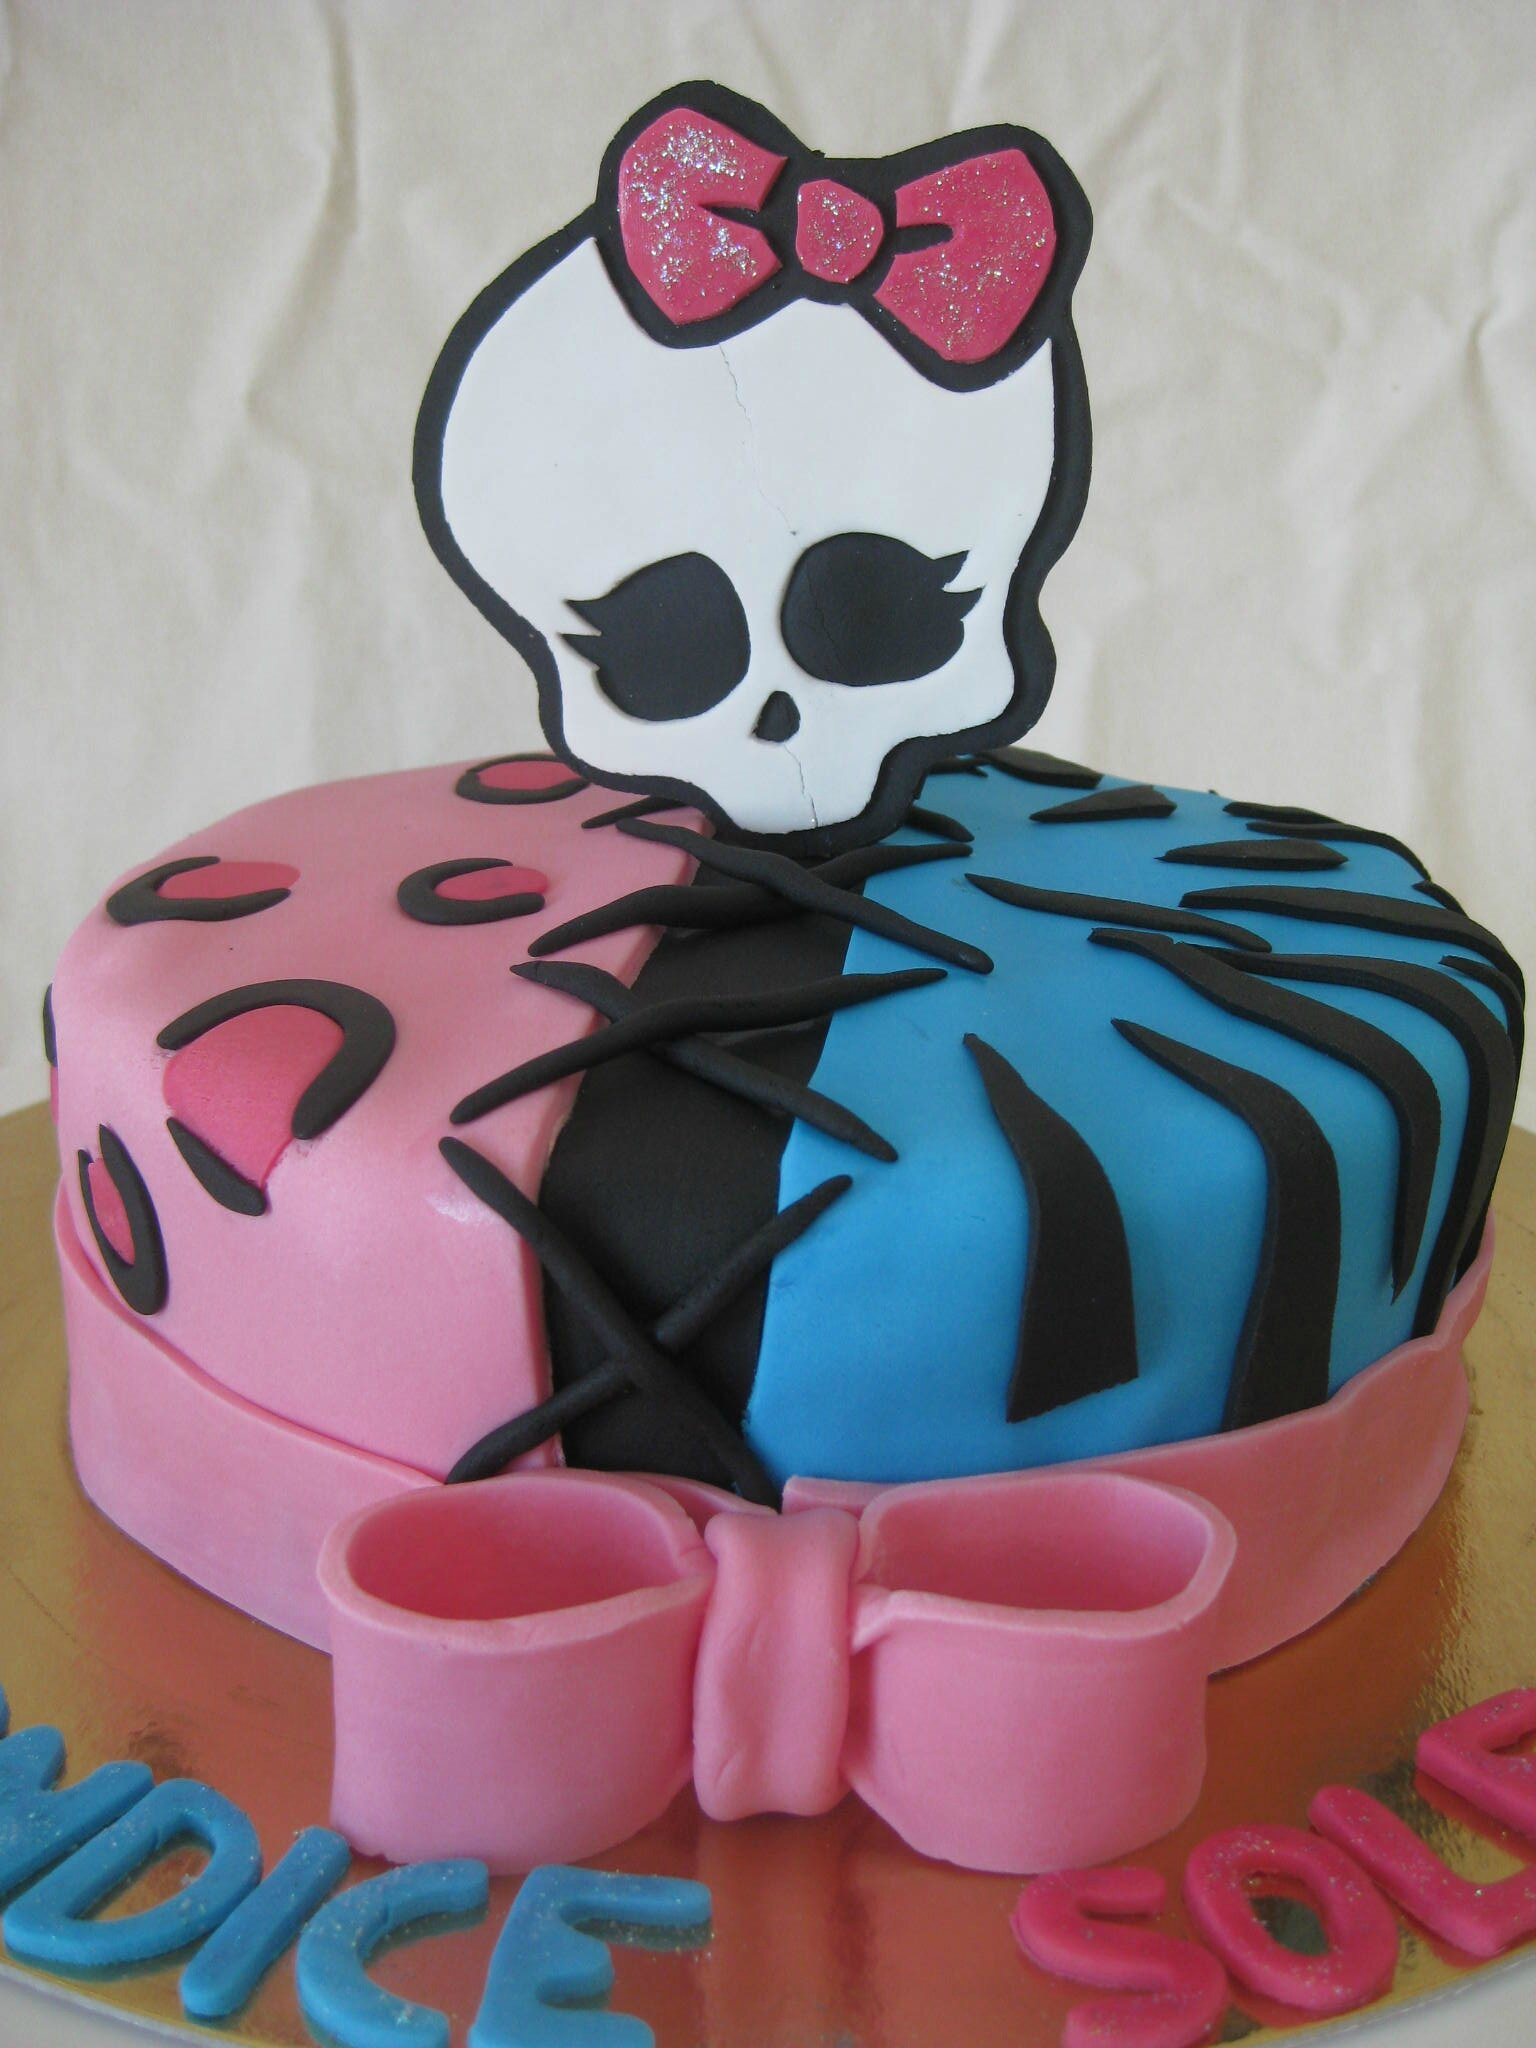 Très Gâteau Monster High n°3 - Monster High cake - Les Hobbies d'Aurélie HK75